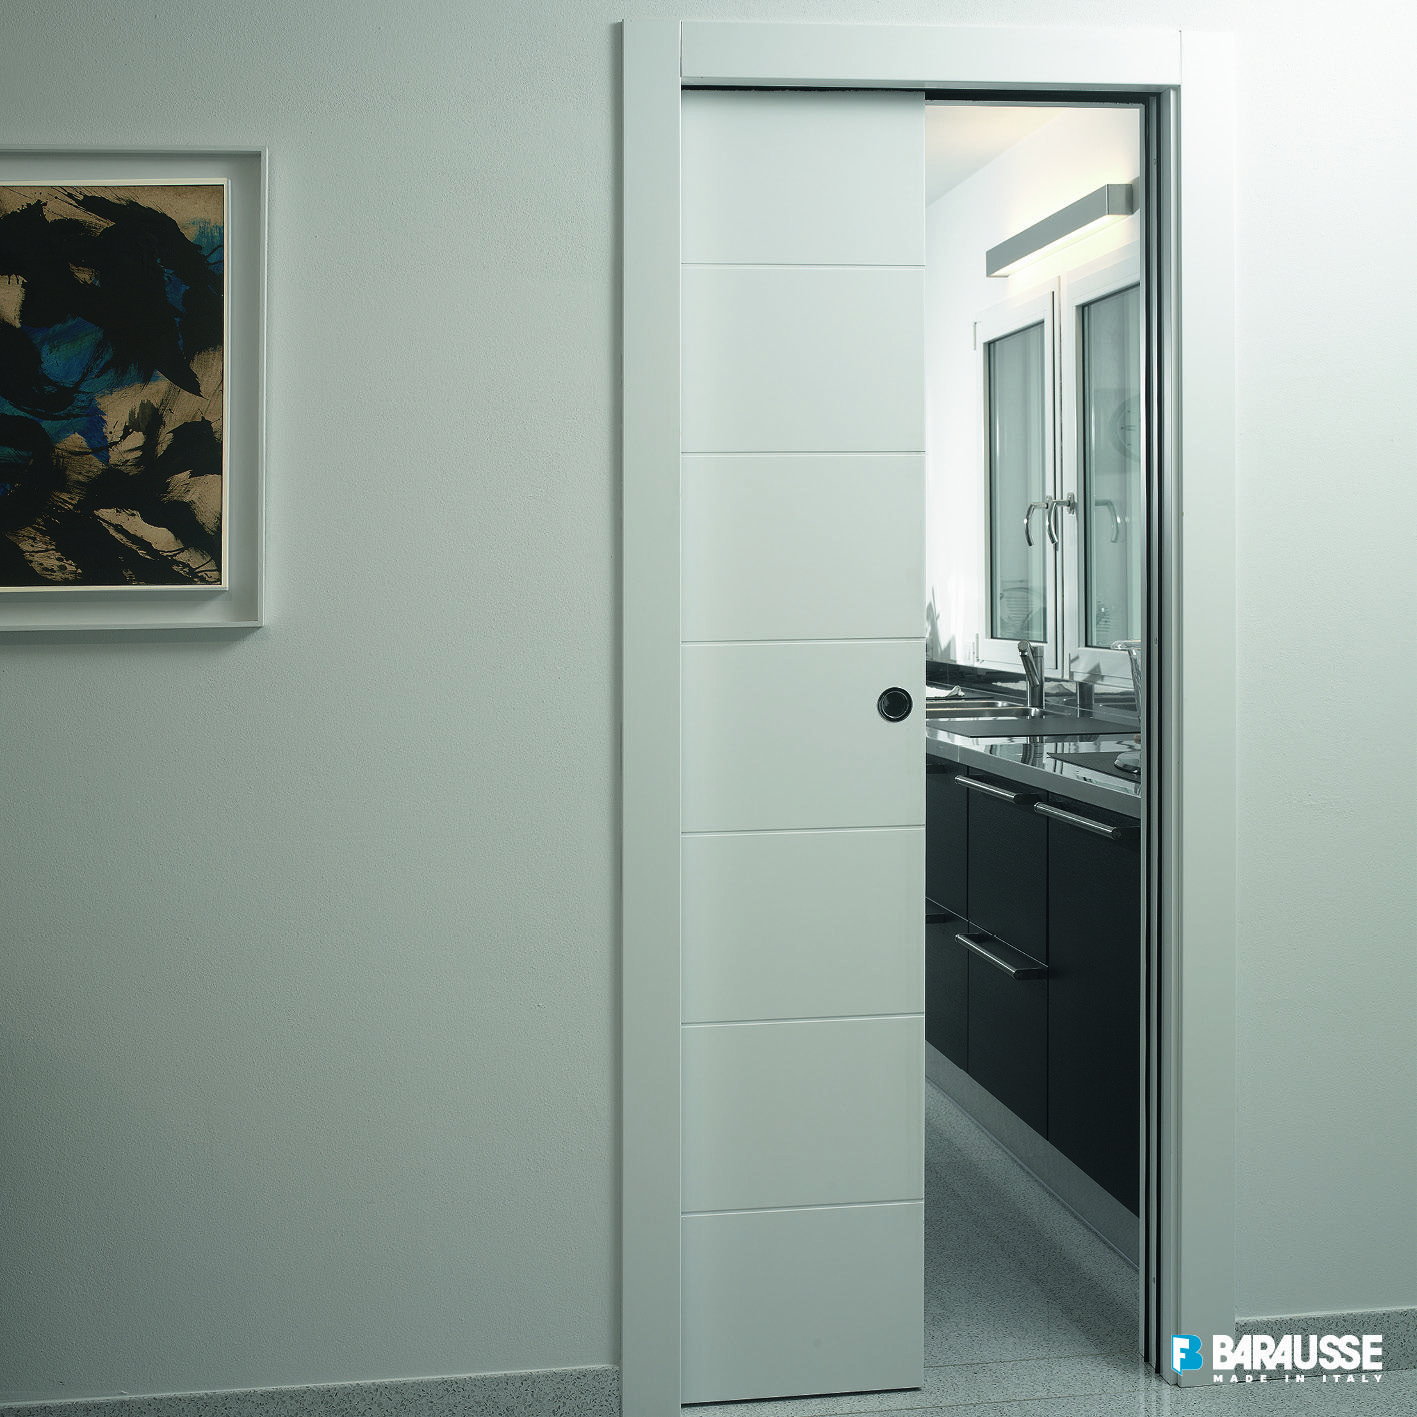 Barausse Doors NYC. Visit Our Showroom For More Details Or Call Us 718 434